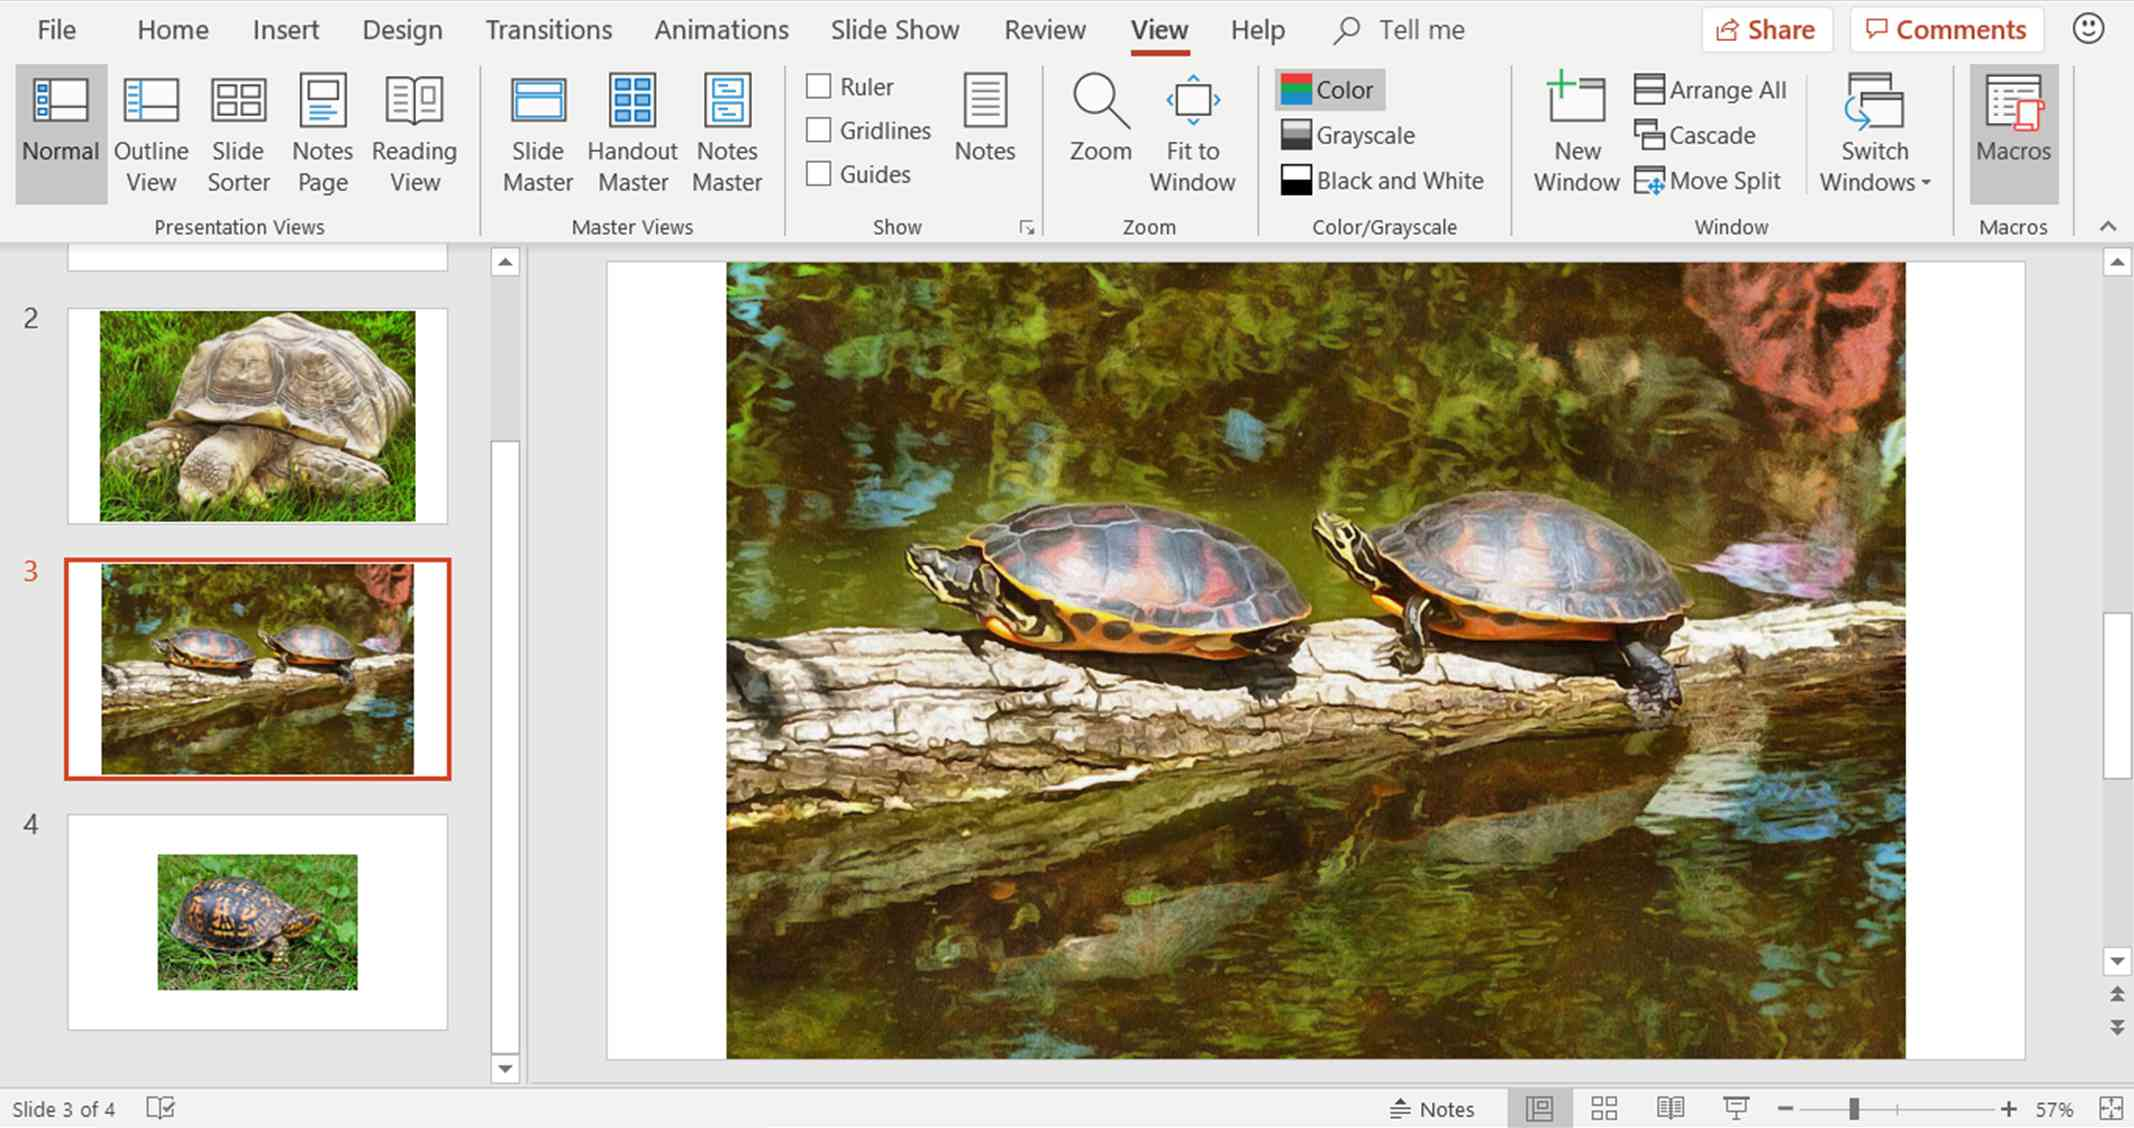 A screenshot showing how to create a new macro in a PowerPoint presentation